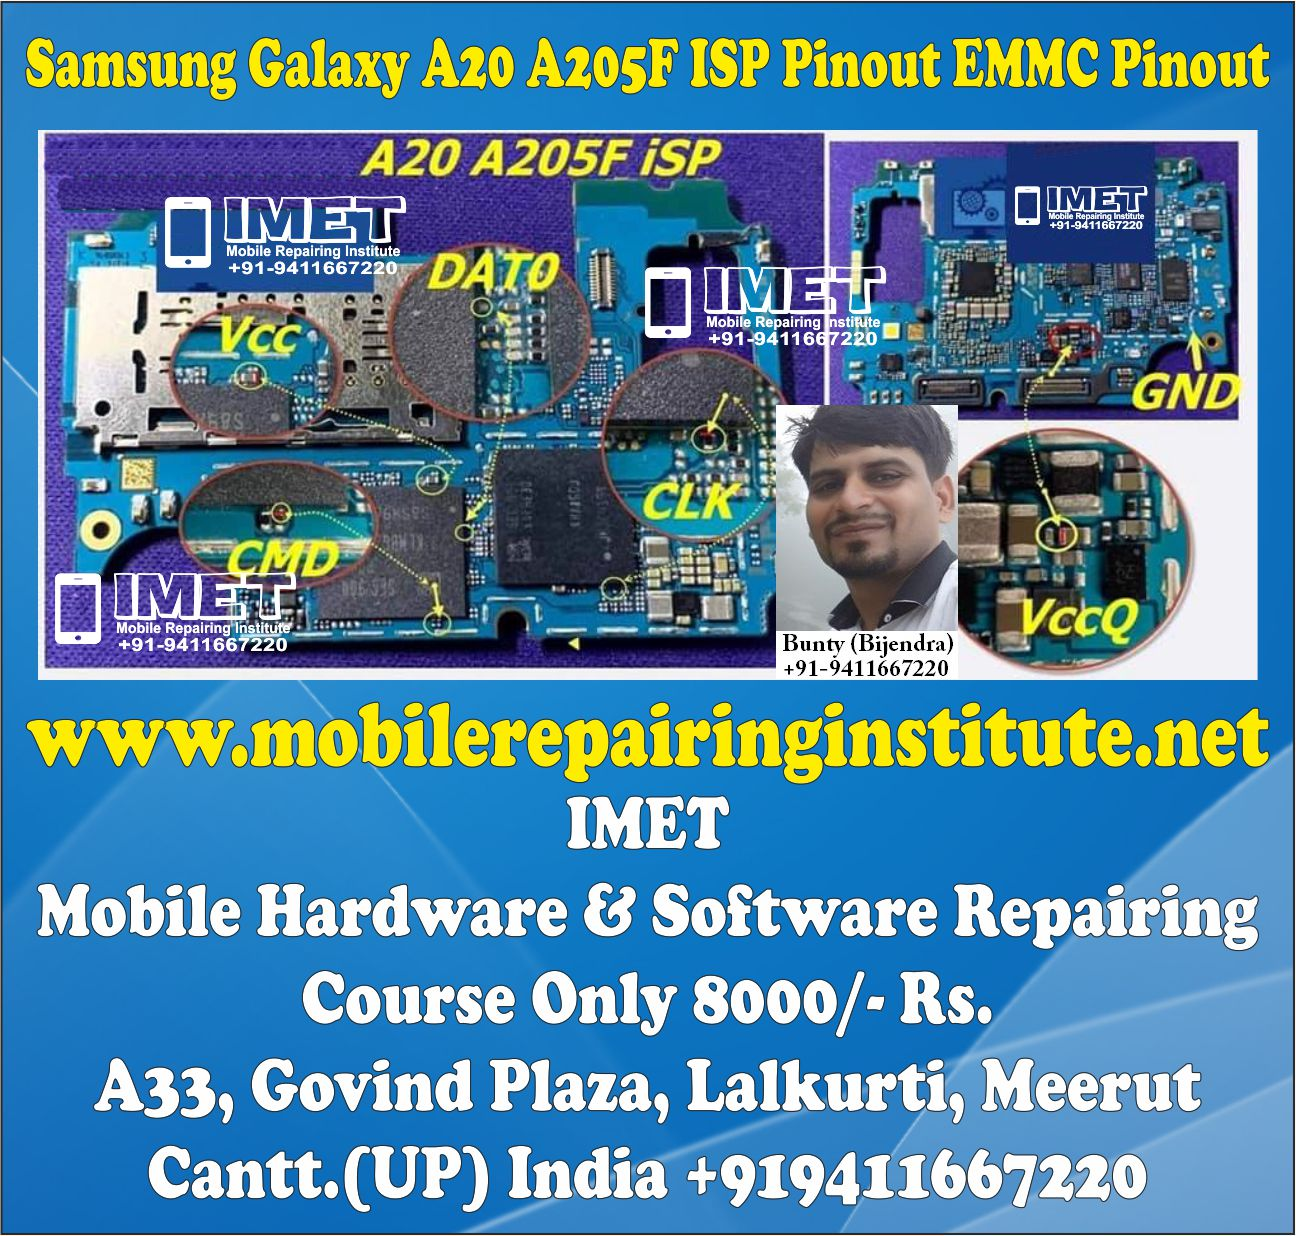 Samsung Galaxy A20 A205F ISP Pinout EMMC Pinout – Dead Boot Repair FRP Remove